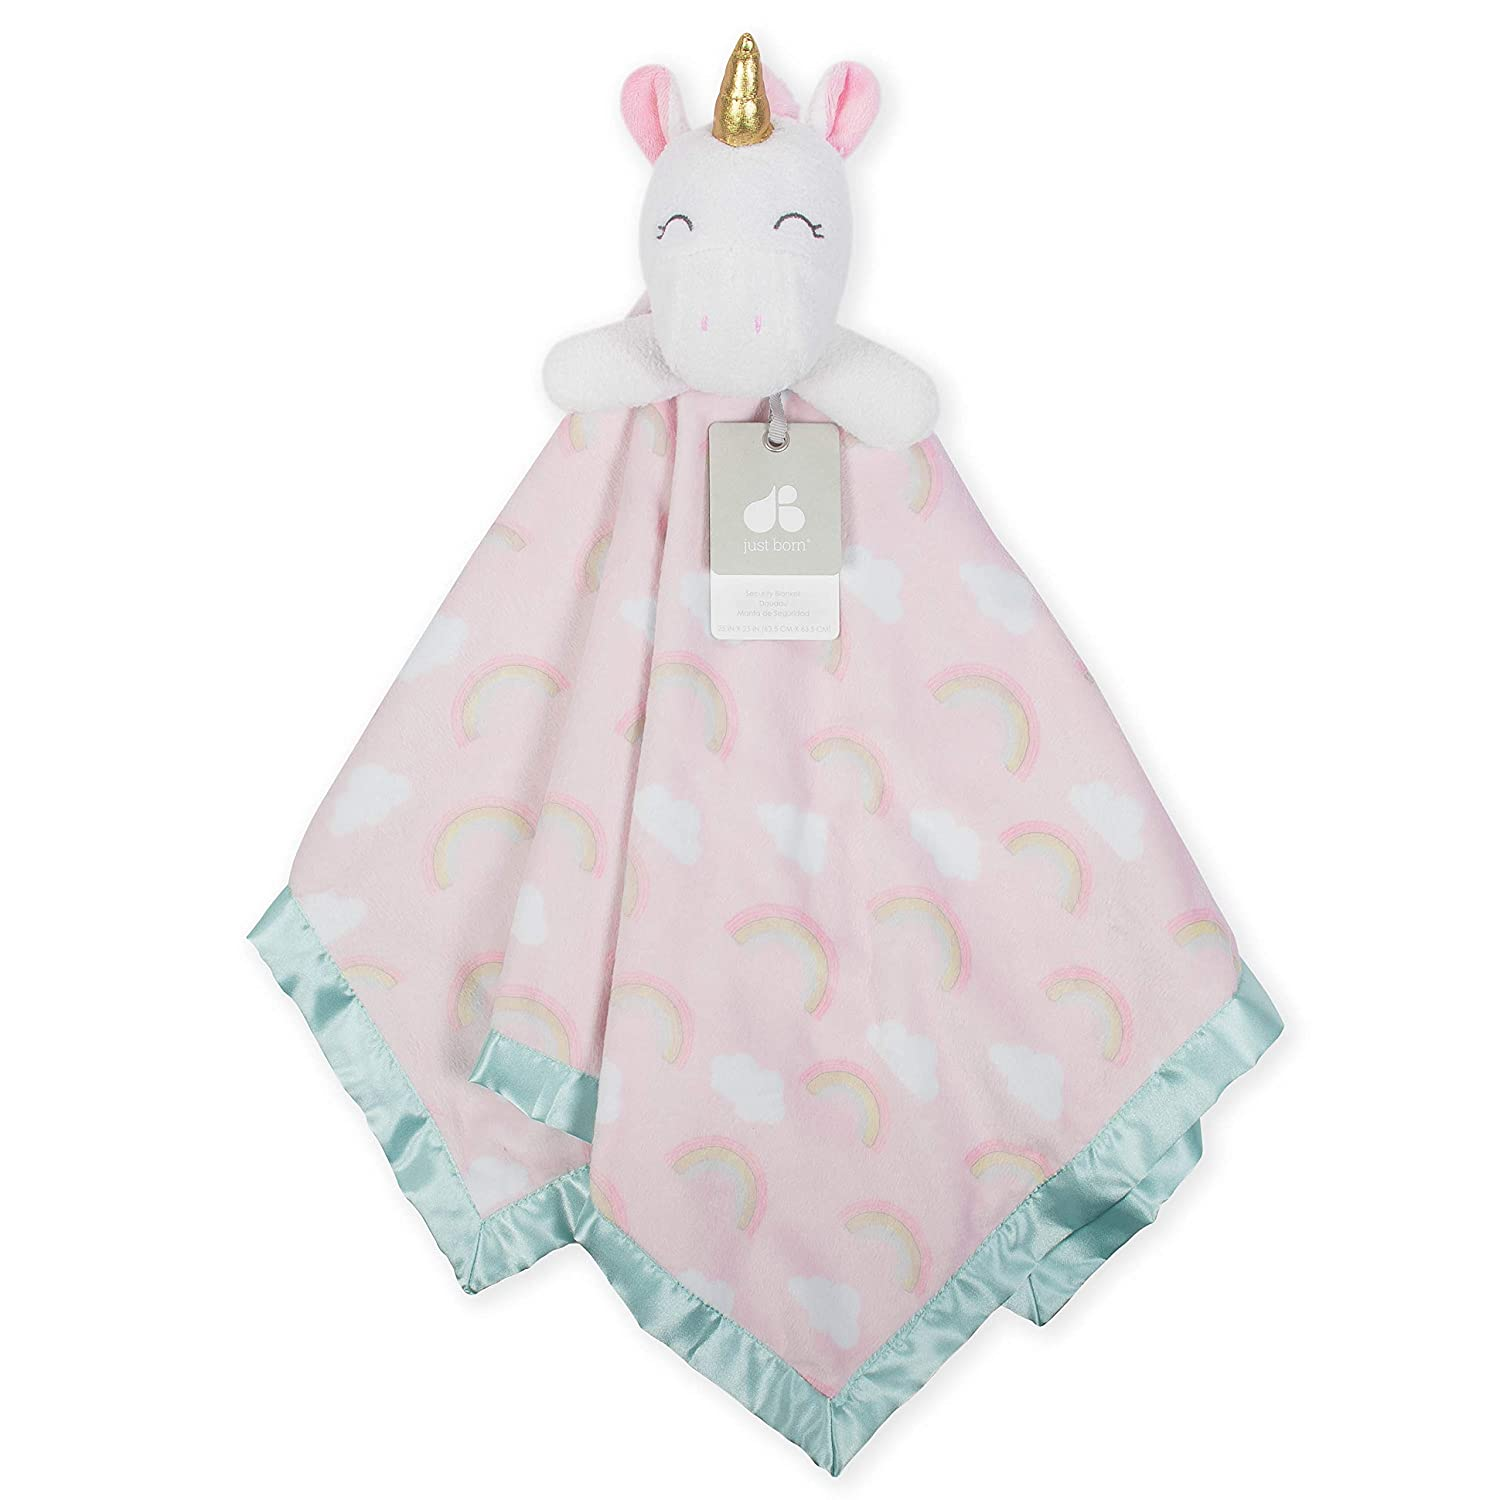 Just Born XL Security Blanket, Pink Unicorn, One Size